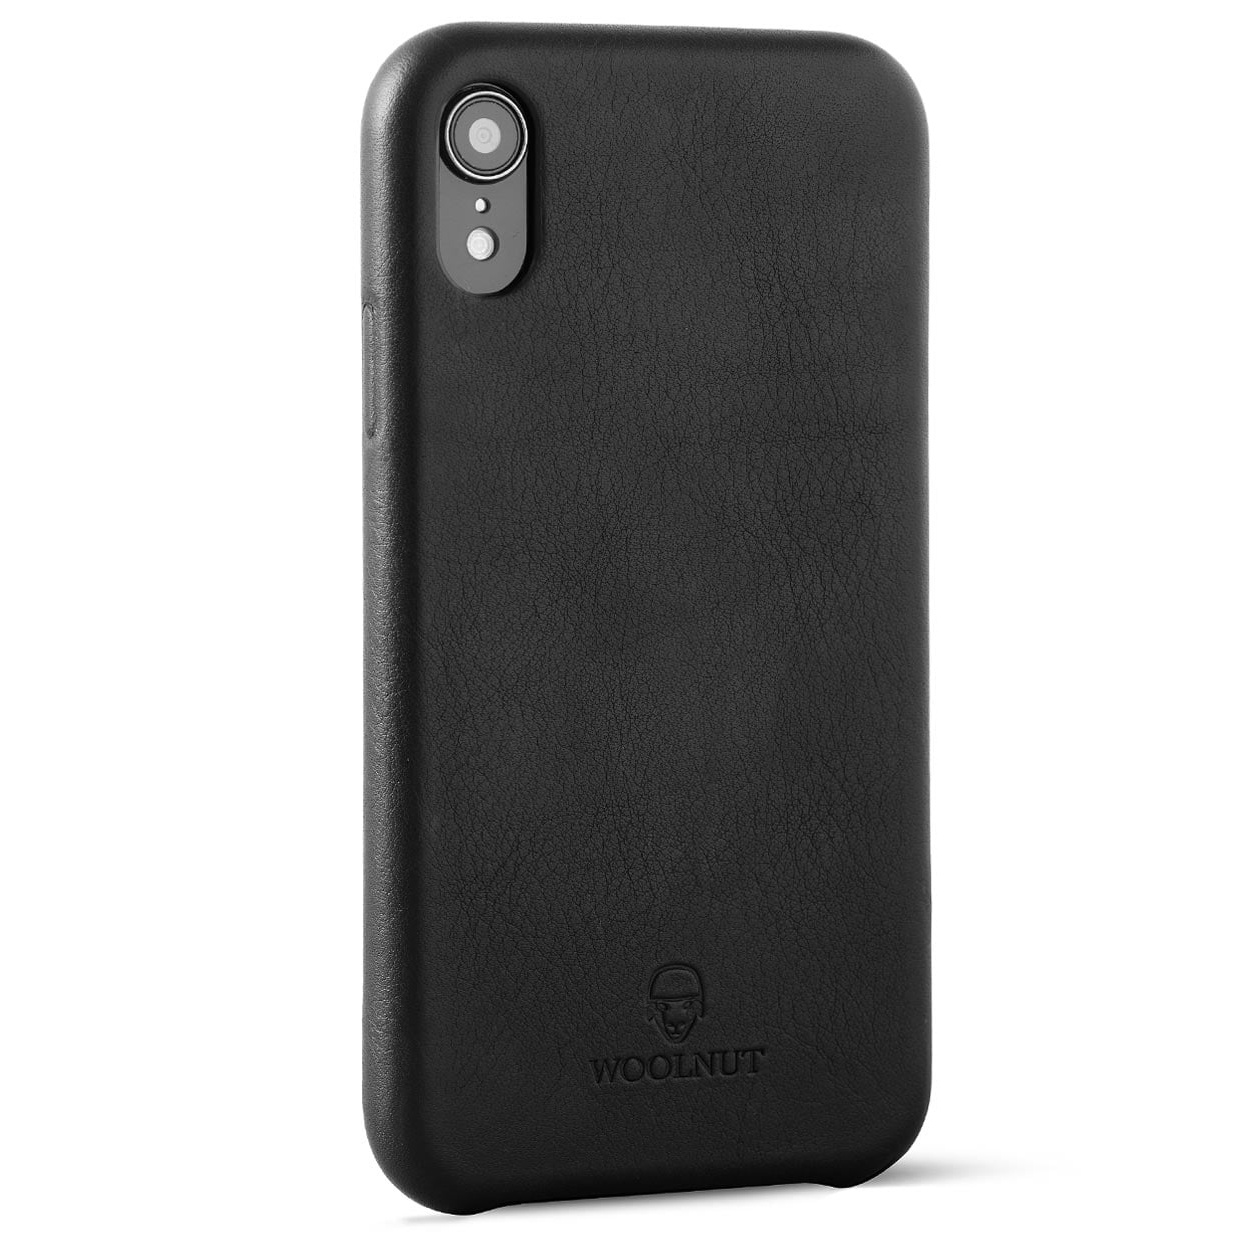 outlet store 0d01f 118f7 Woolnut iPhone XR Premium Soft Case Nappa Leather, Black